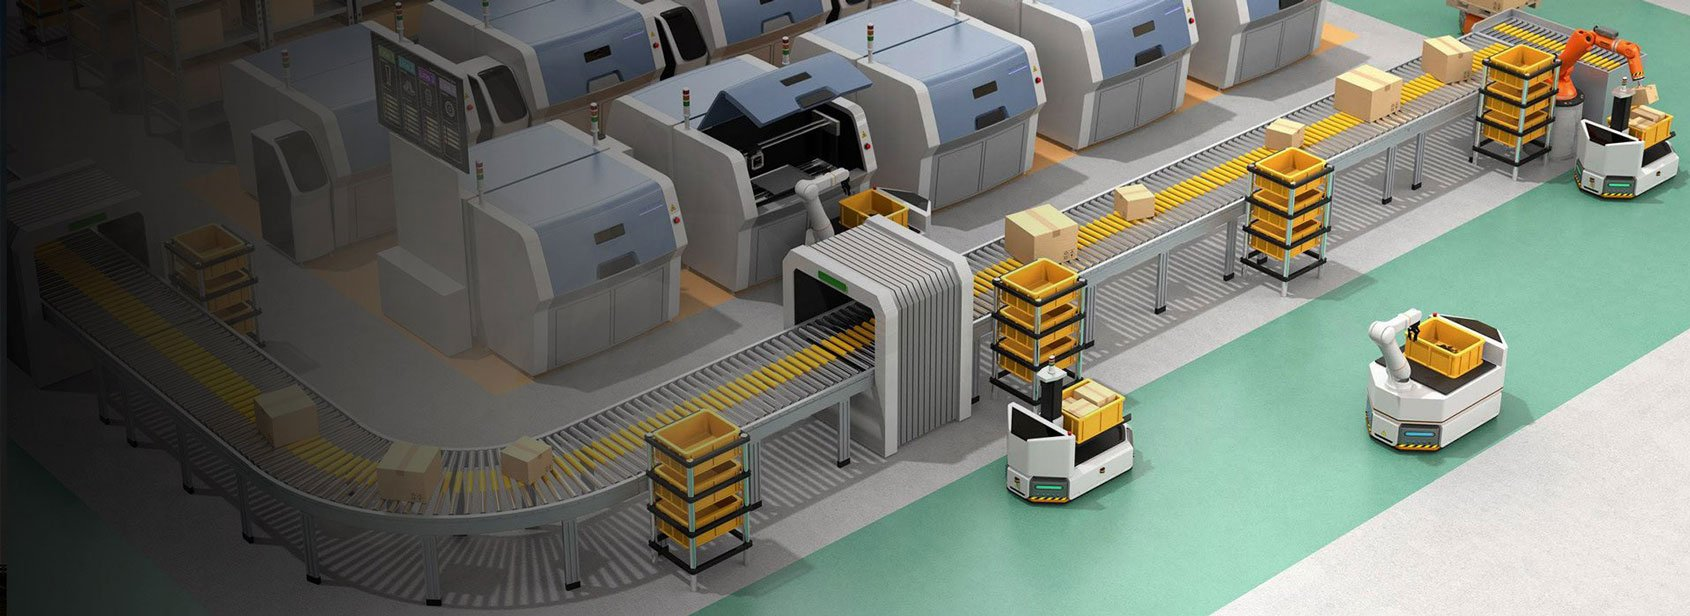 Mobile Robotic Systems 1